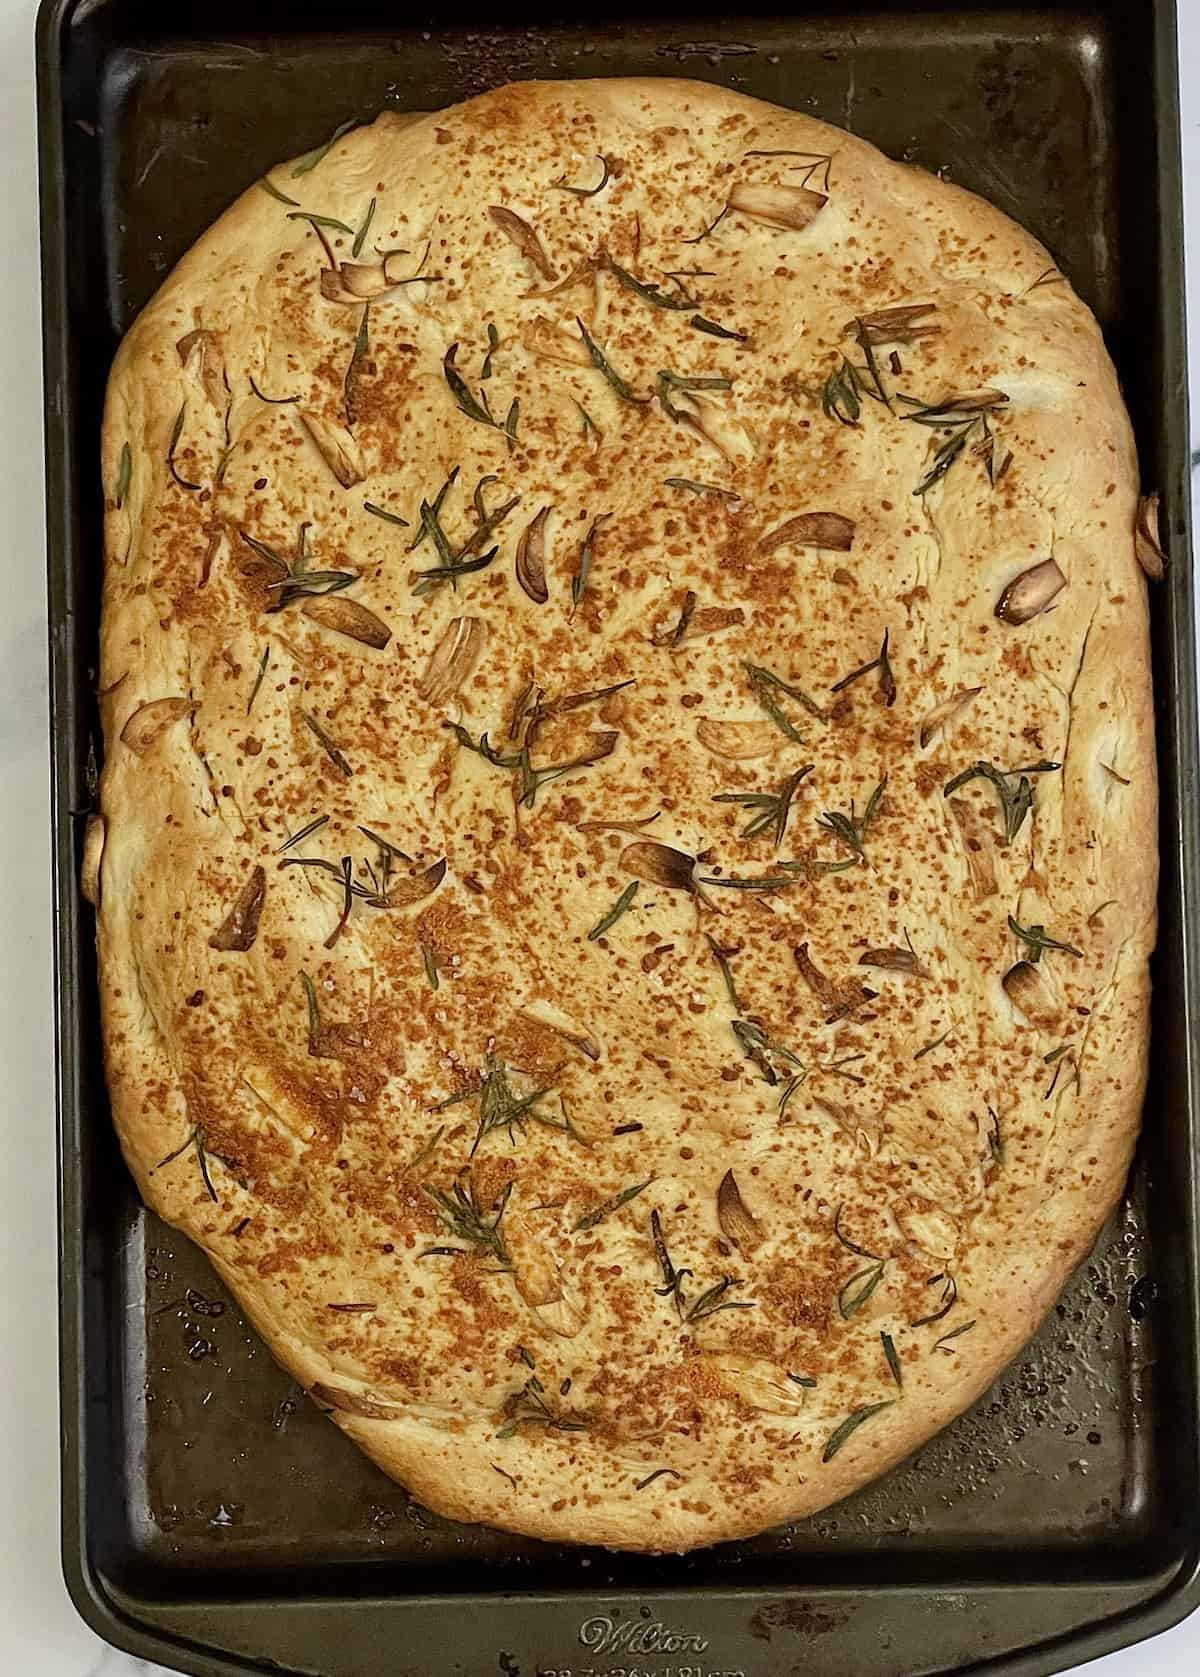 focaccia bread on a baking sheet topped with rosemary, garlic, and olive oil